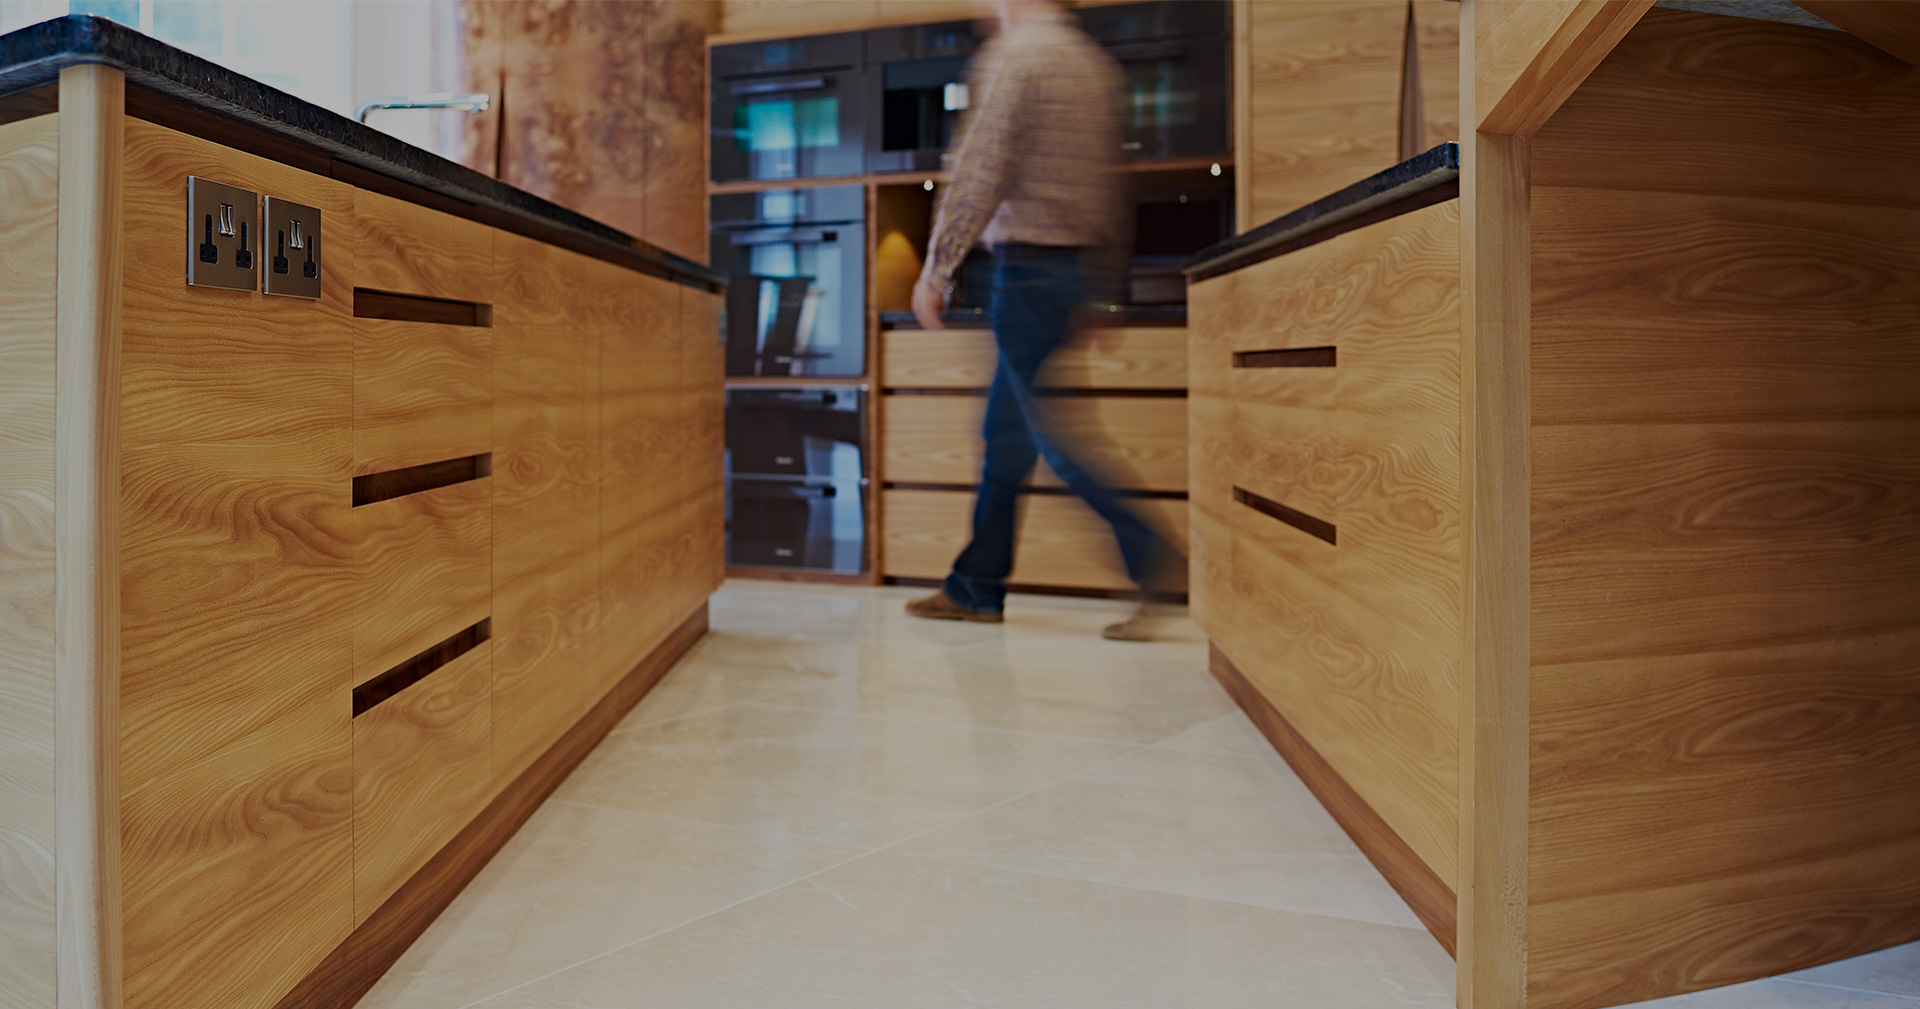 simon thomas pirie bespoke handmade kitchens and furniture craft furniture maker